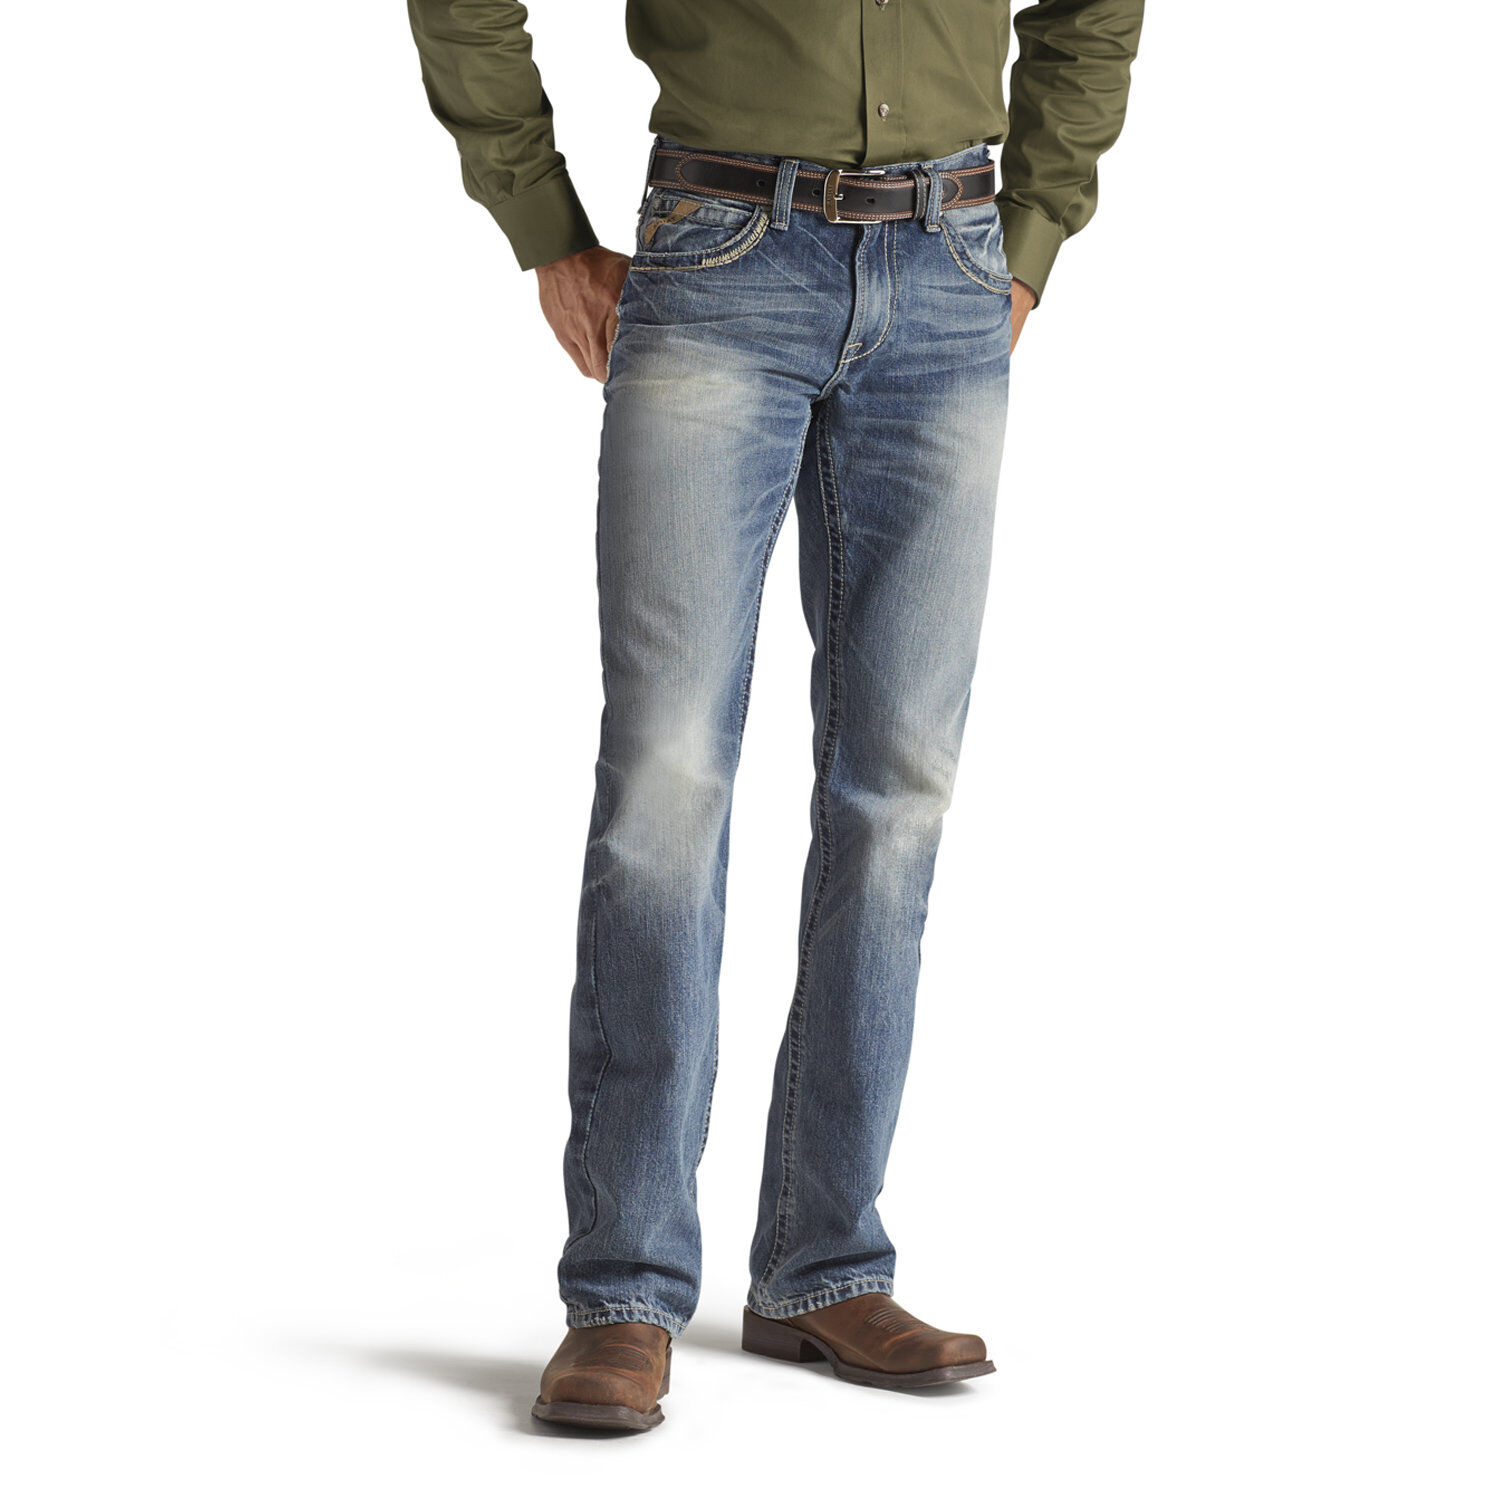 Mens bootcut jeans 40 x 36